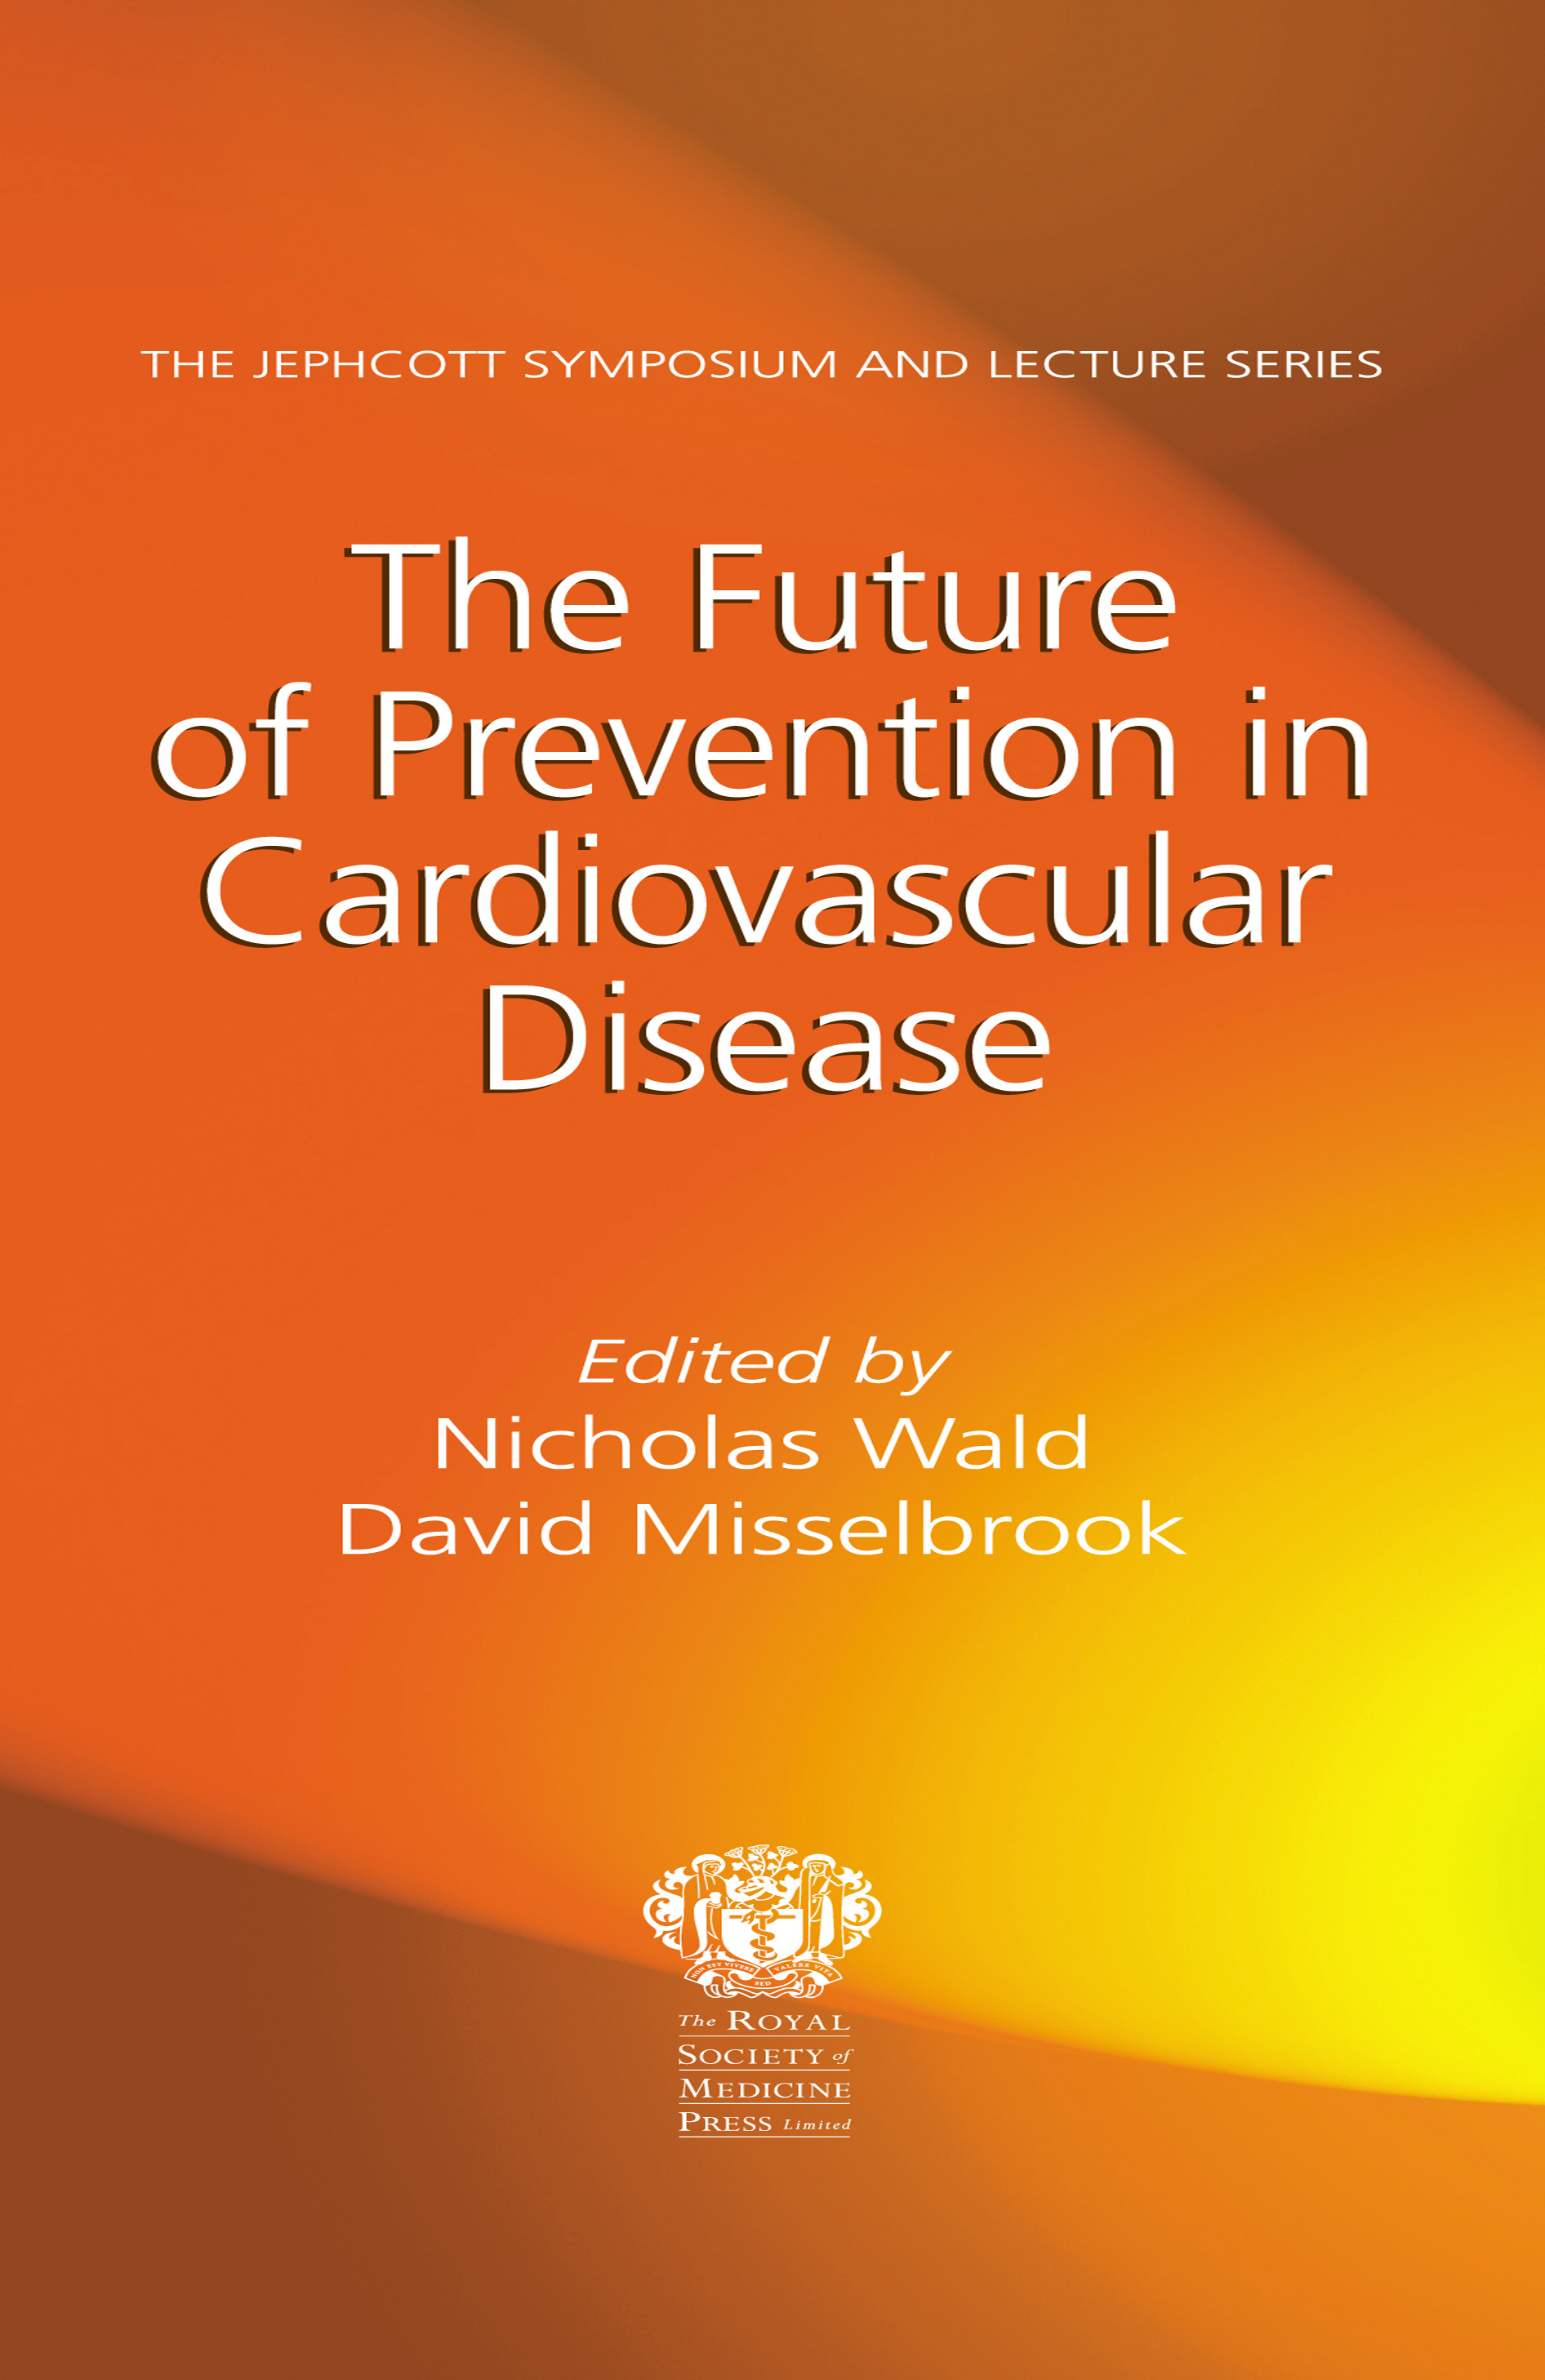 Future of Prevention in Cardiovascular Disease